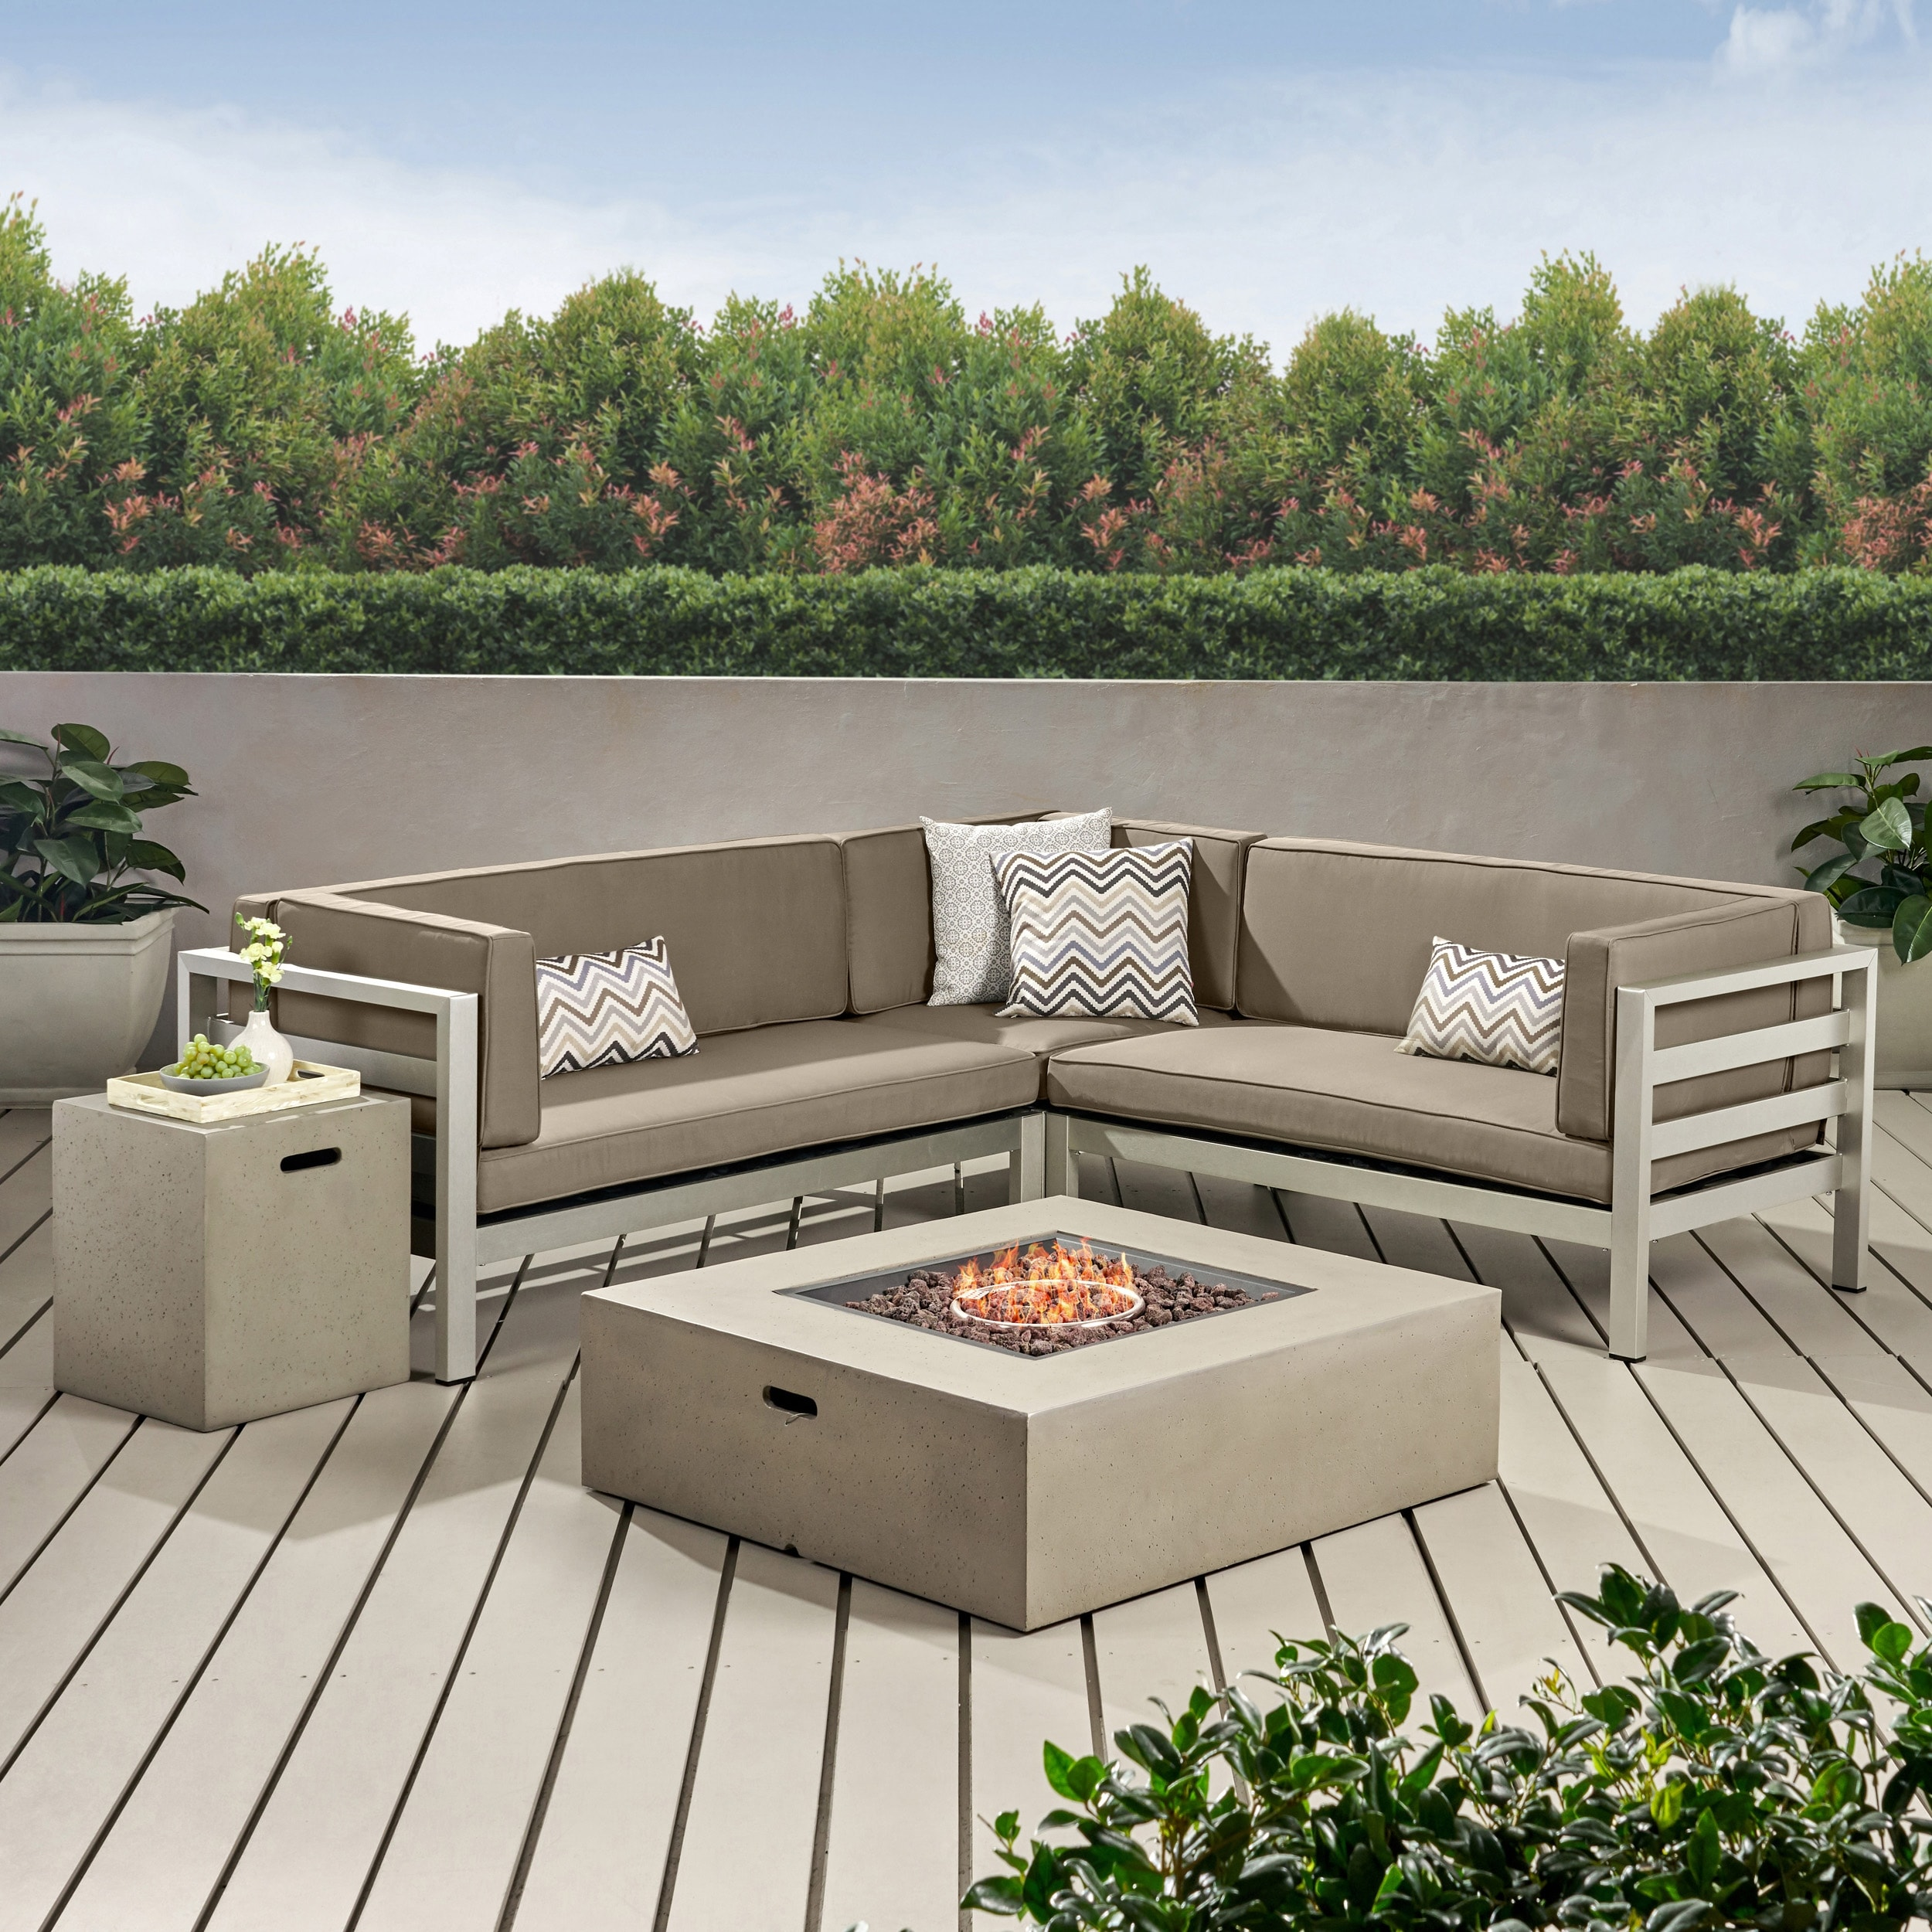 bel aire outdoor modern 5 seater v shaped sectional sofa set with fire pit and tank holder by christopher knight home